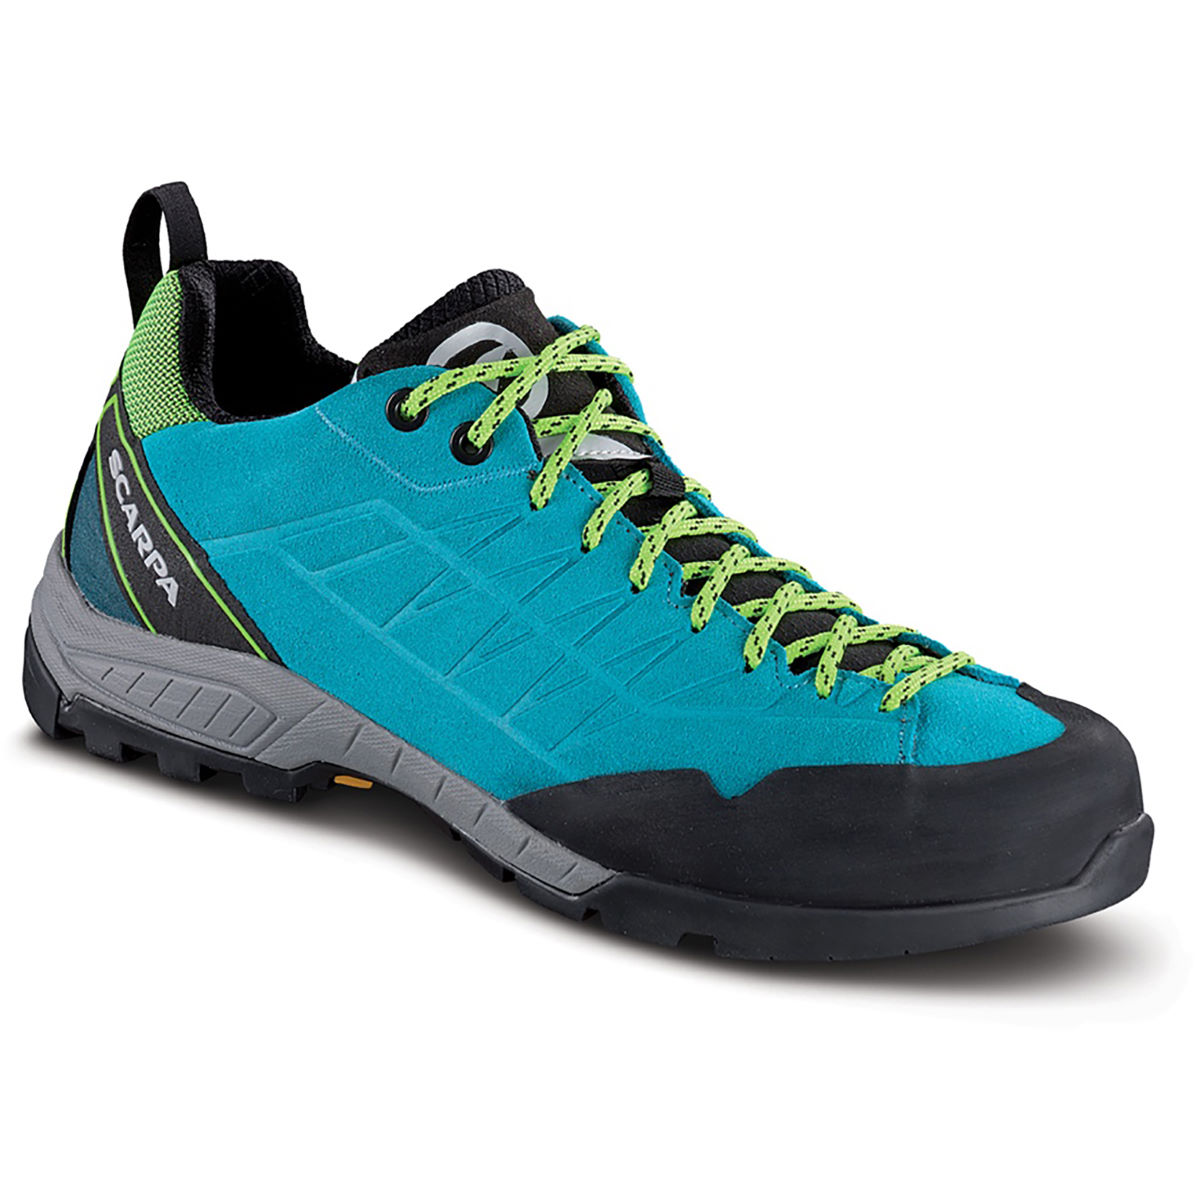 Scarpa Women's Epic Shoes - Zapatillas